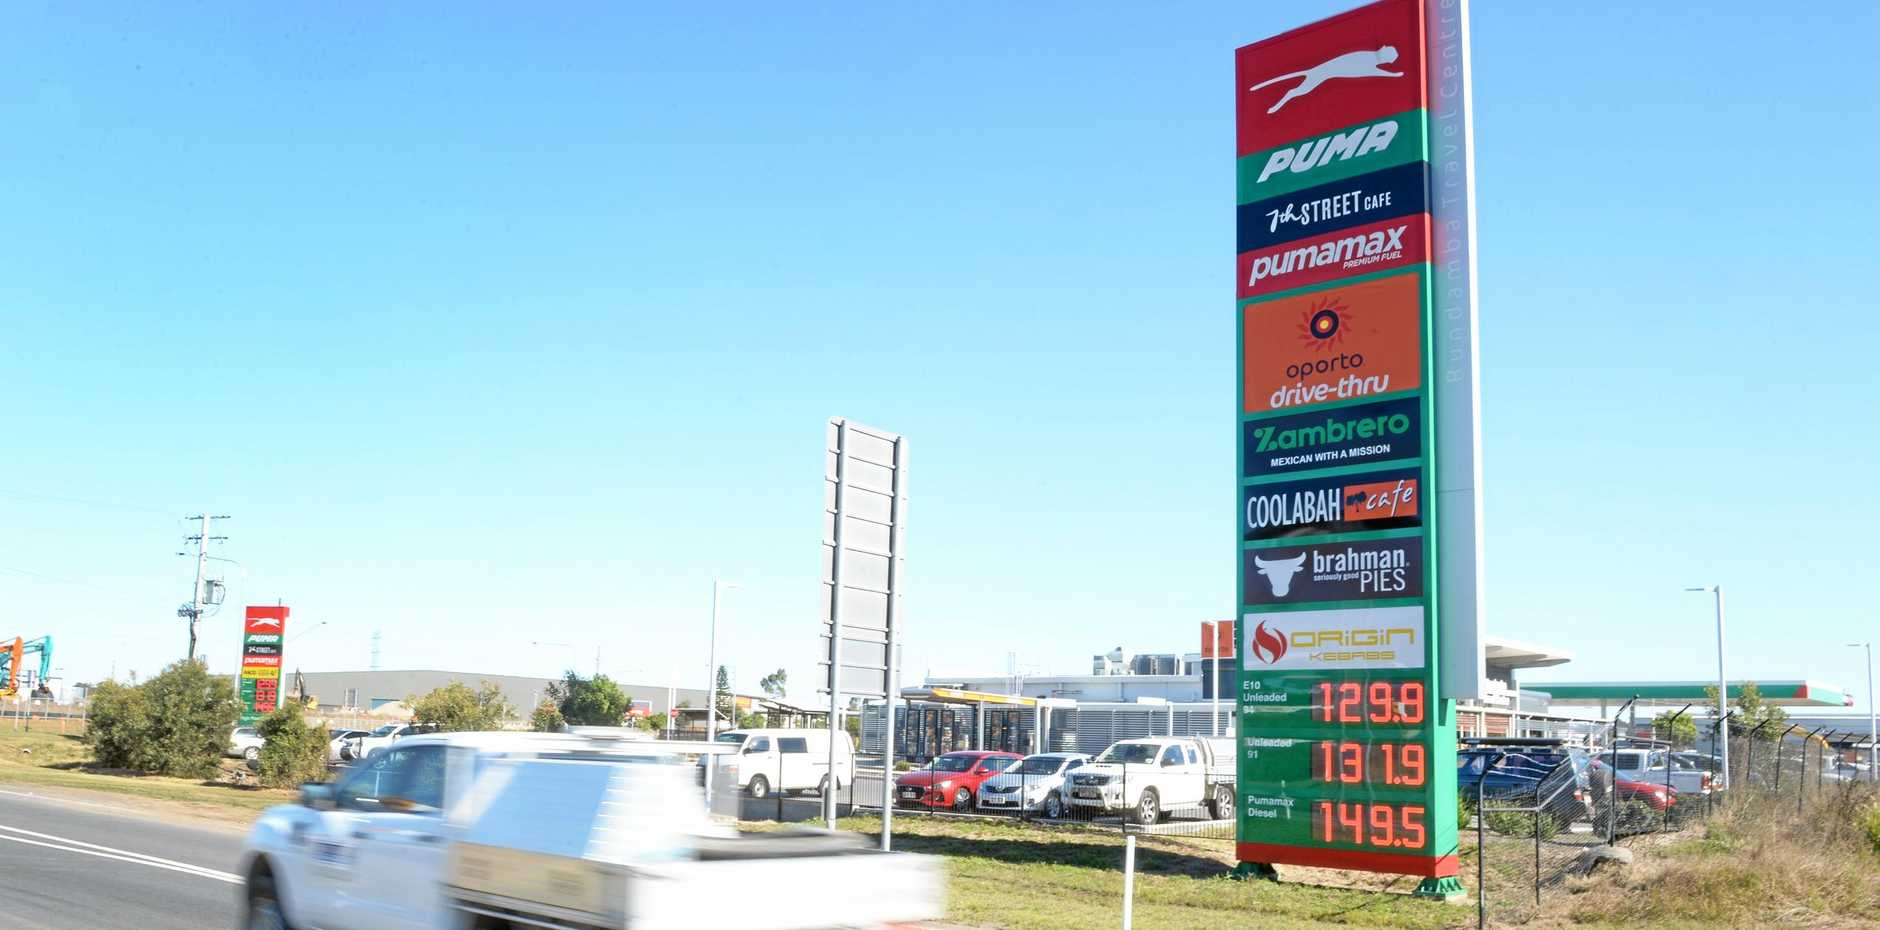 Puma service station at Bundamba.